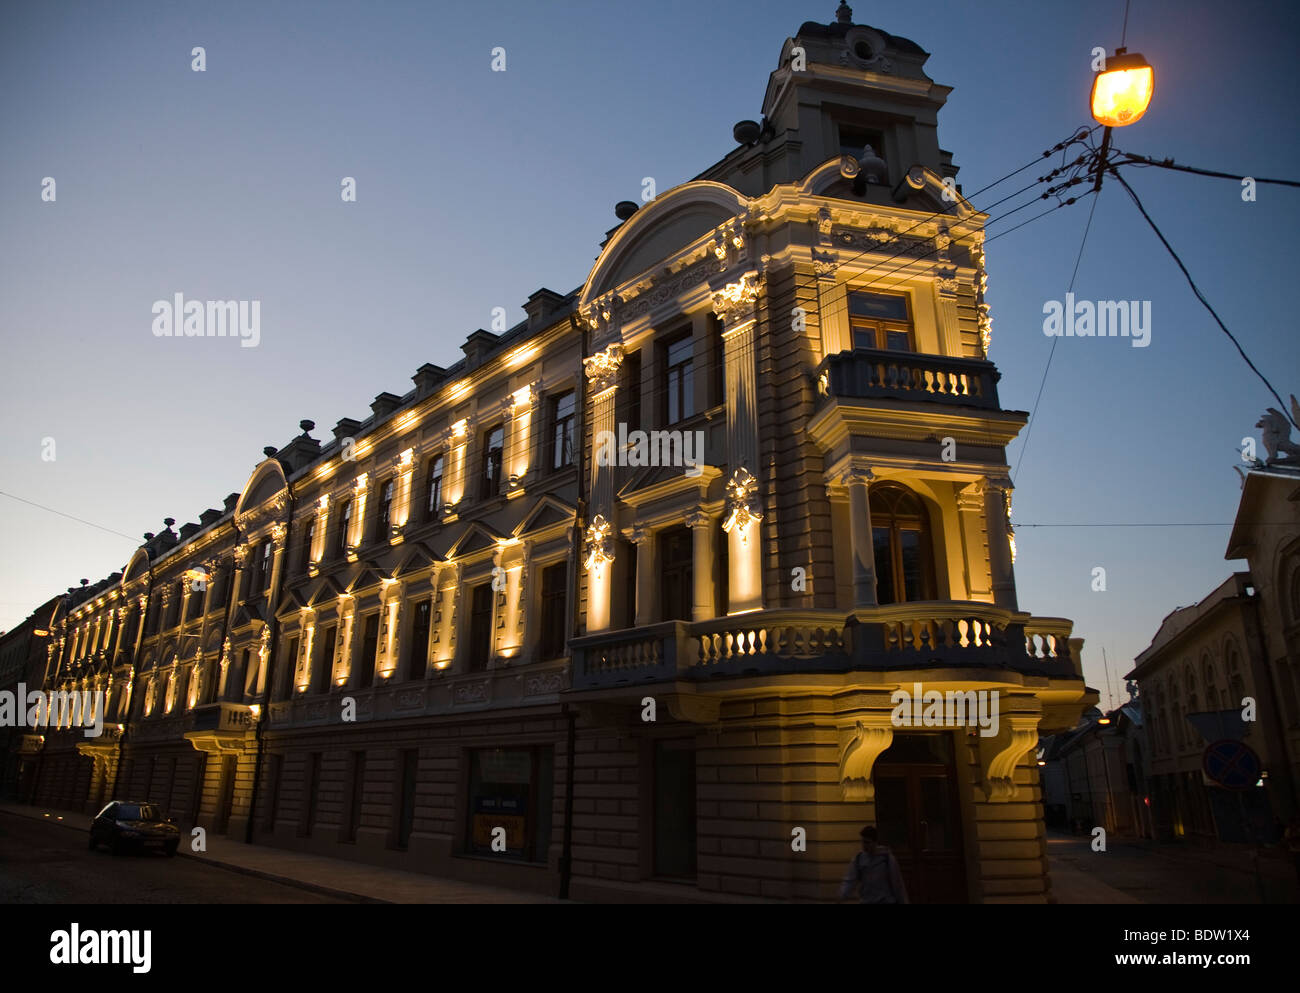 beleuchteter appartmentblock bei nacht, vilnaus gatve, illuminated residential house at night, vilna - Stock Image